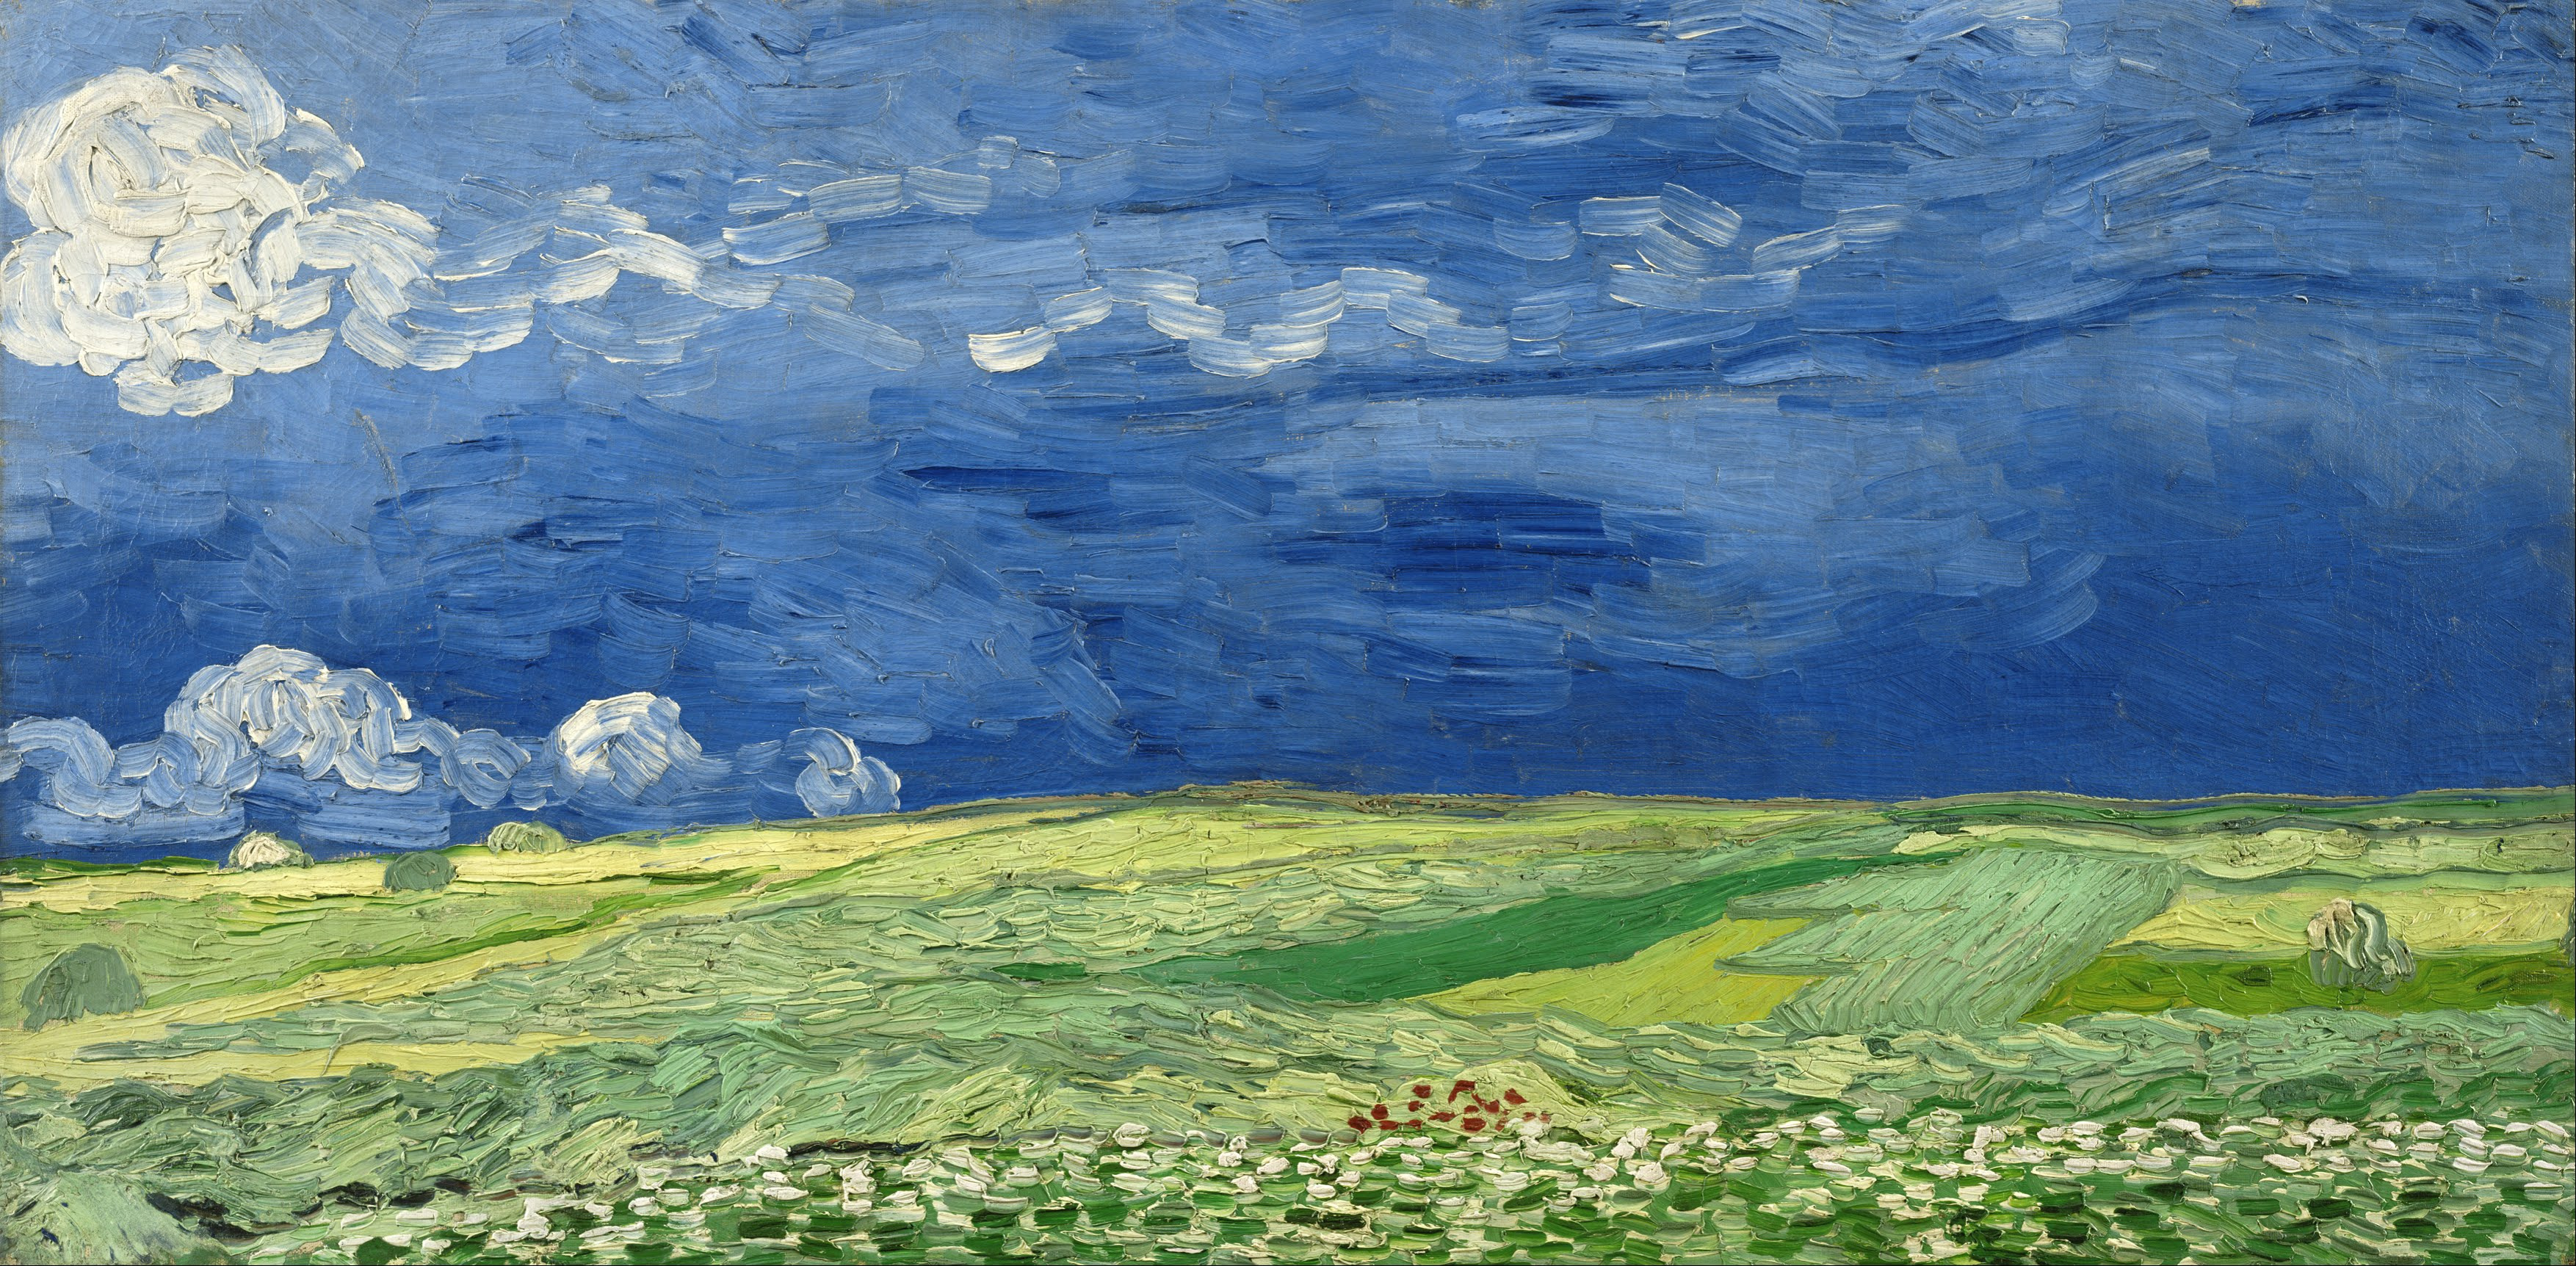 English Essay Com Filevincent Van Gogh  Wheatfield Under Thunderclouds  Google Art  Projectjpg The Importance Of English Essay also High School Essay Example Filevincent Van Gogh  Wheatfield Under Thunderclouds  Google Art  How To Write A Thesis For A Narrative Essay